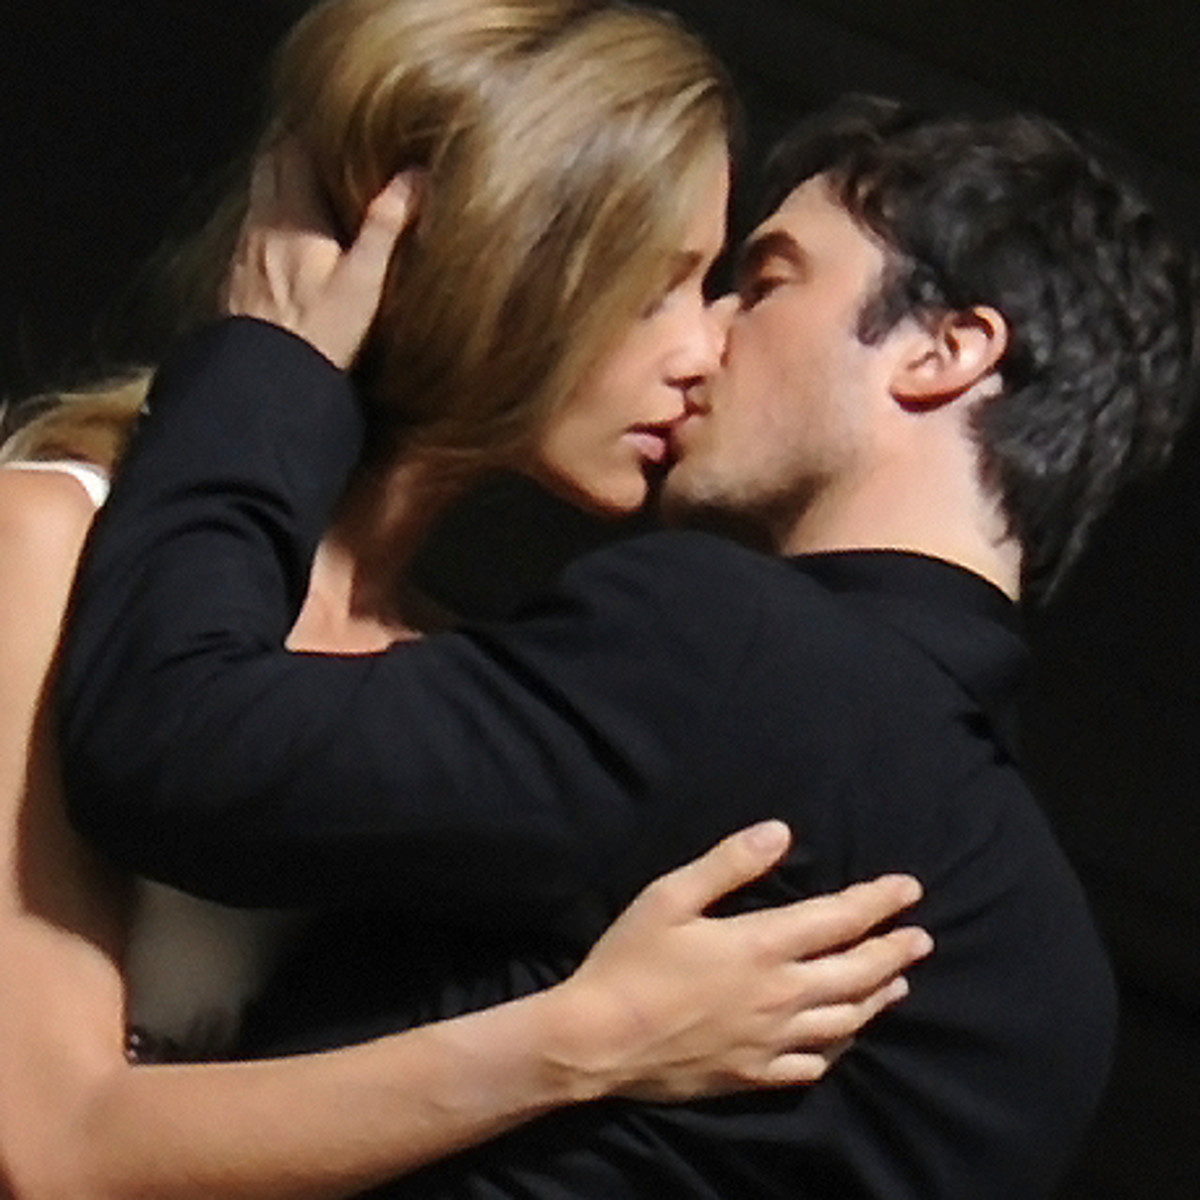 An Ian Somerhalder lip-lock for Ana Beatriz Barros on the set of the Azzaro Pour Homme shoot.